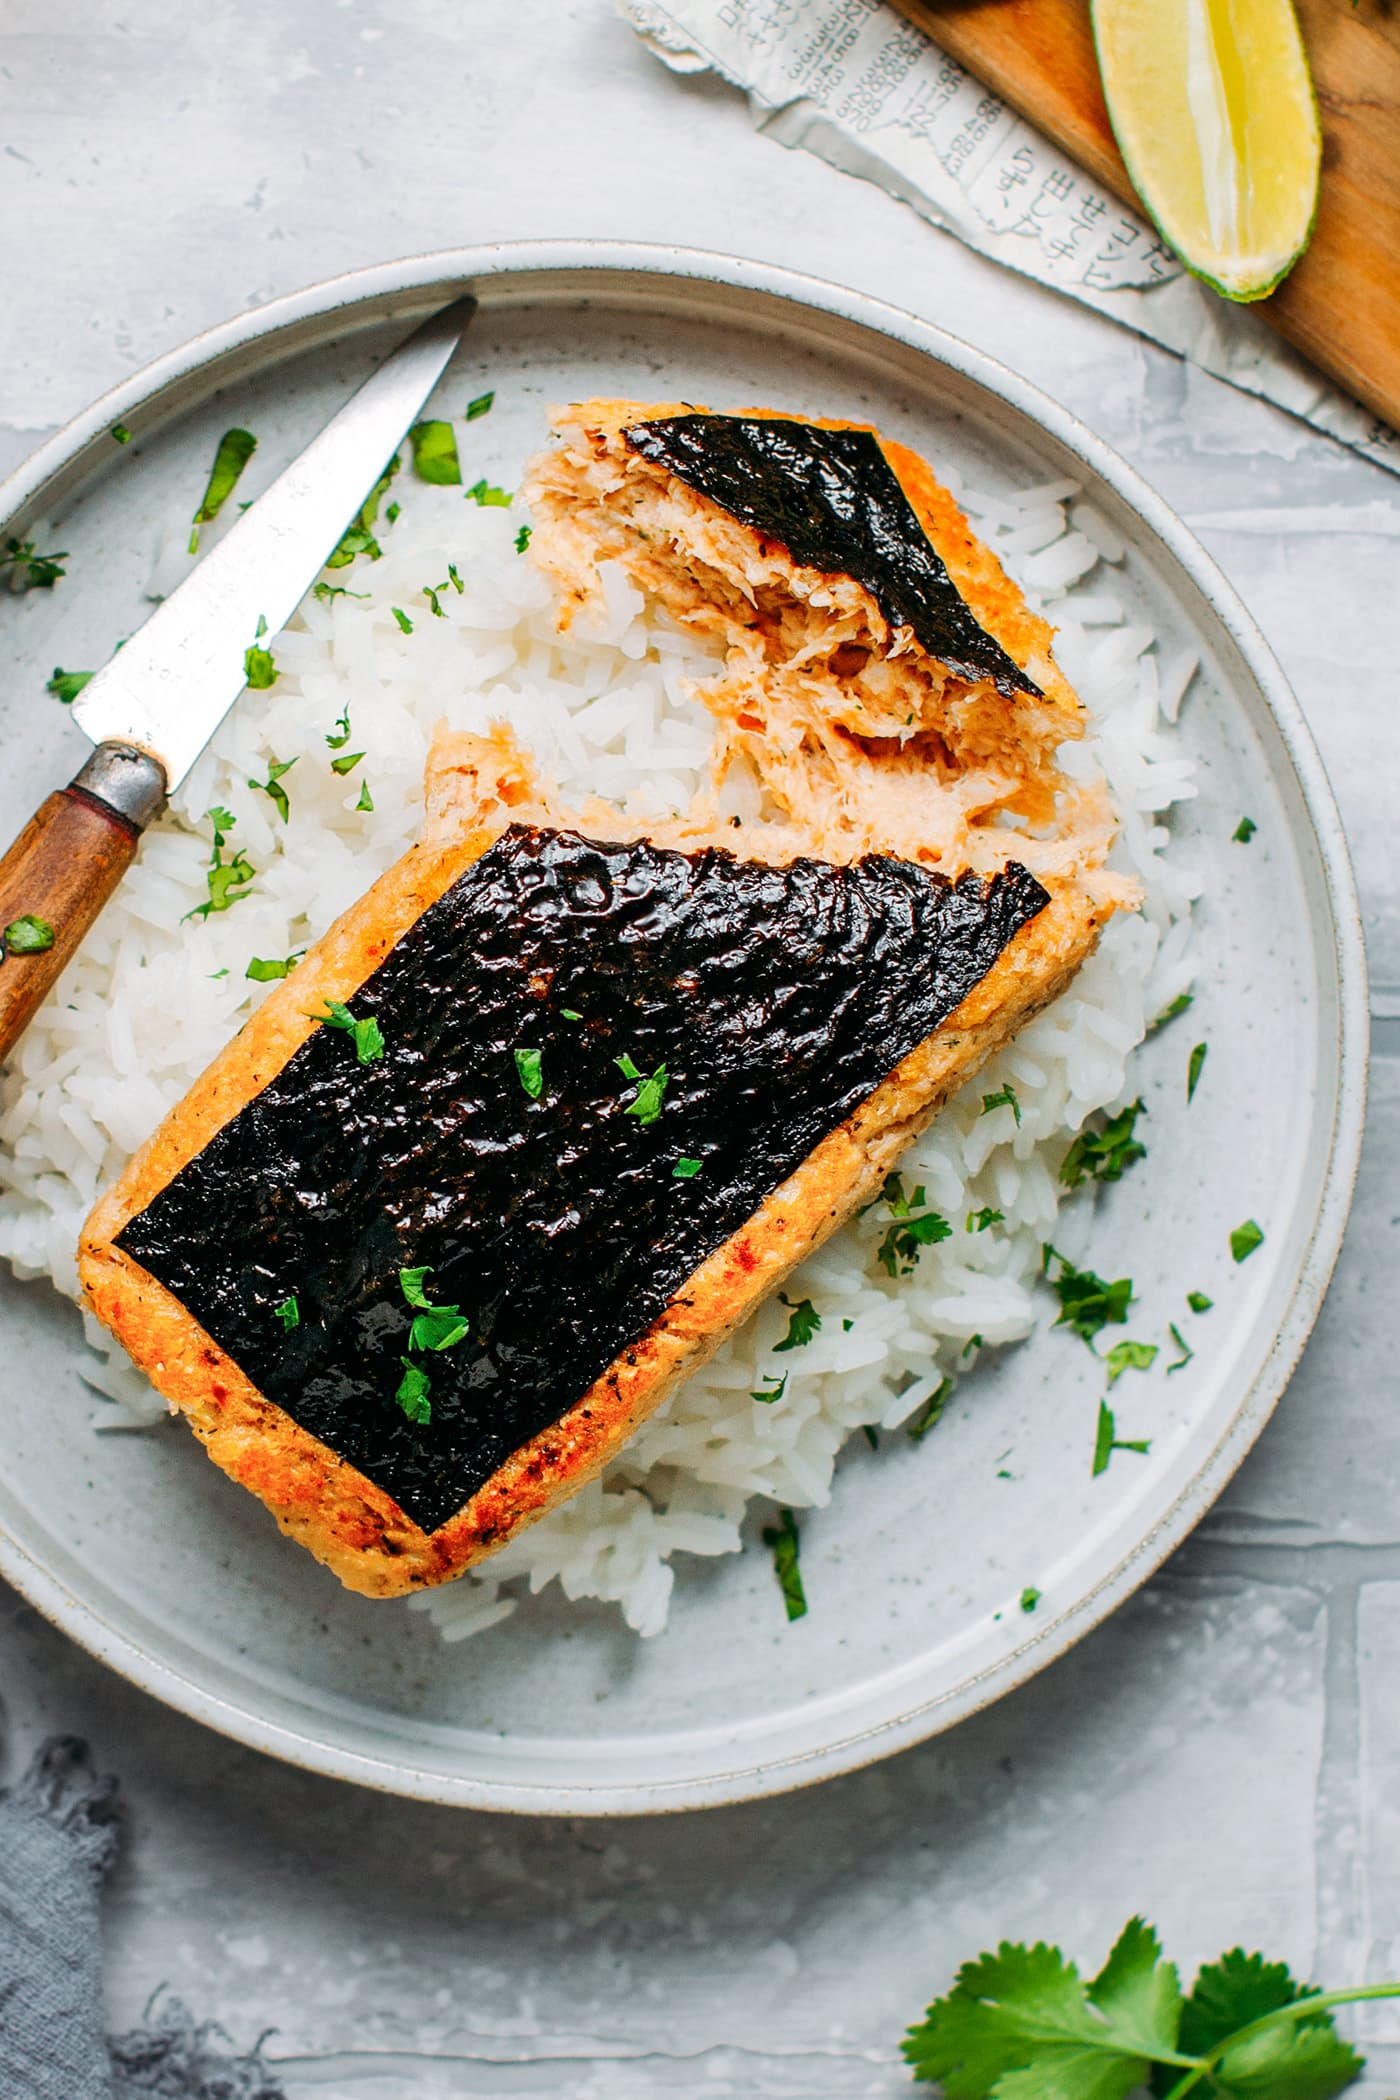 Vegan Fish Fillet on a bed of rice with cilantro.